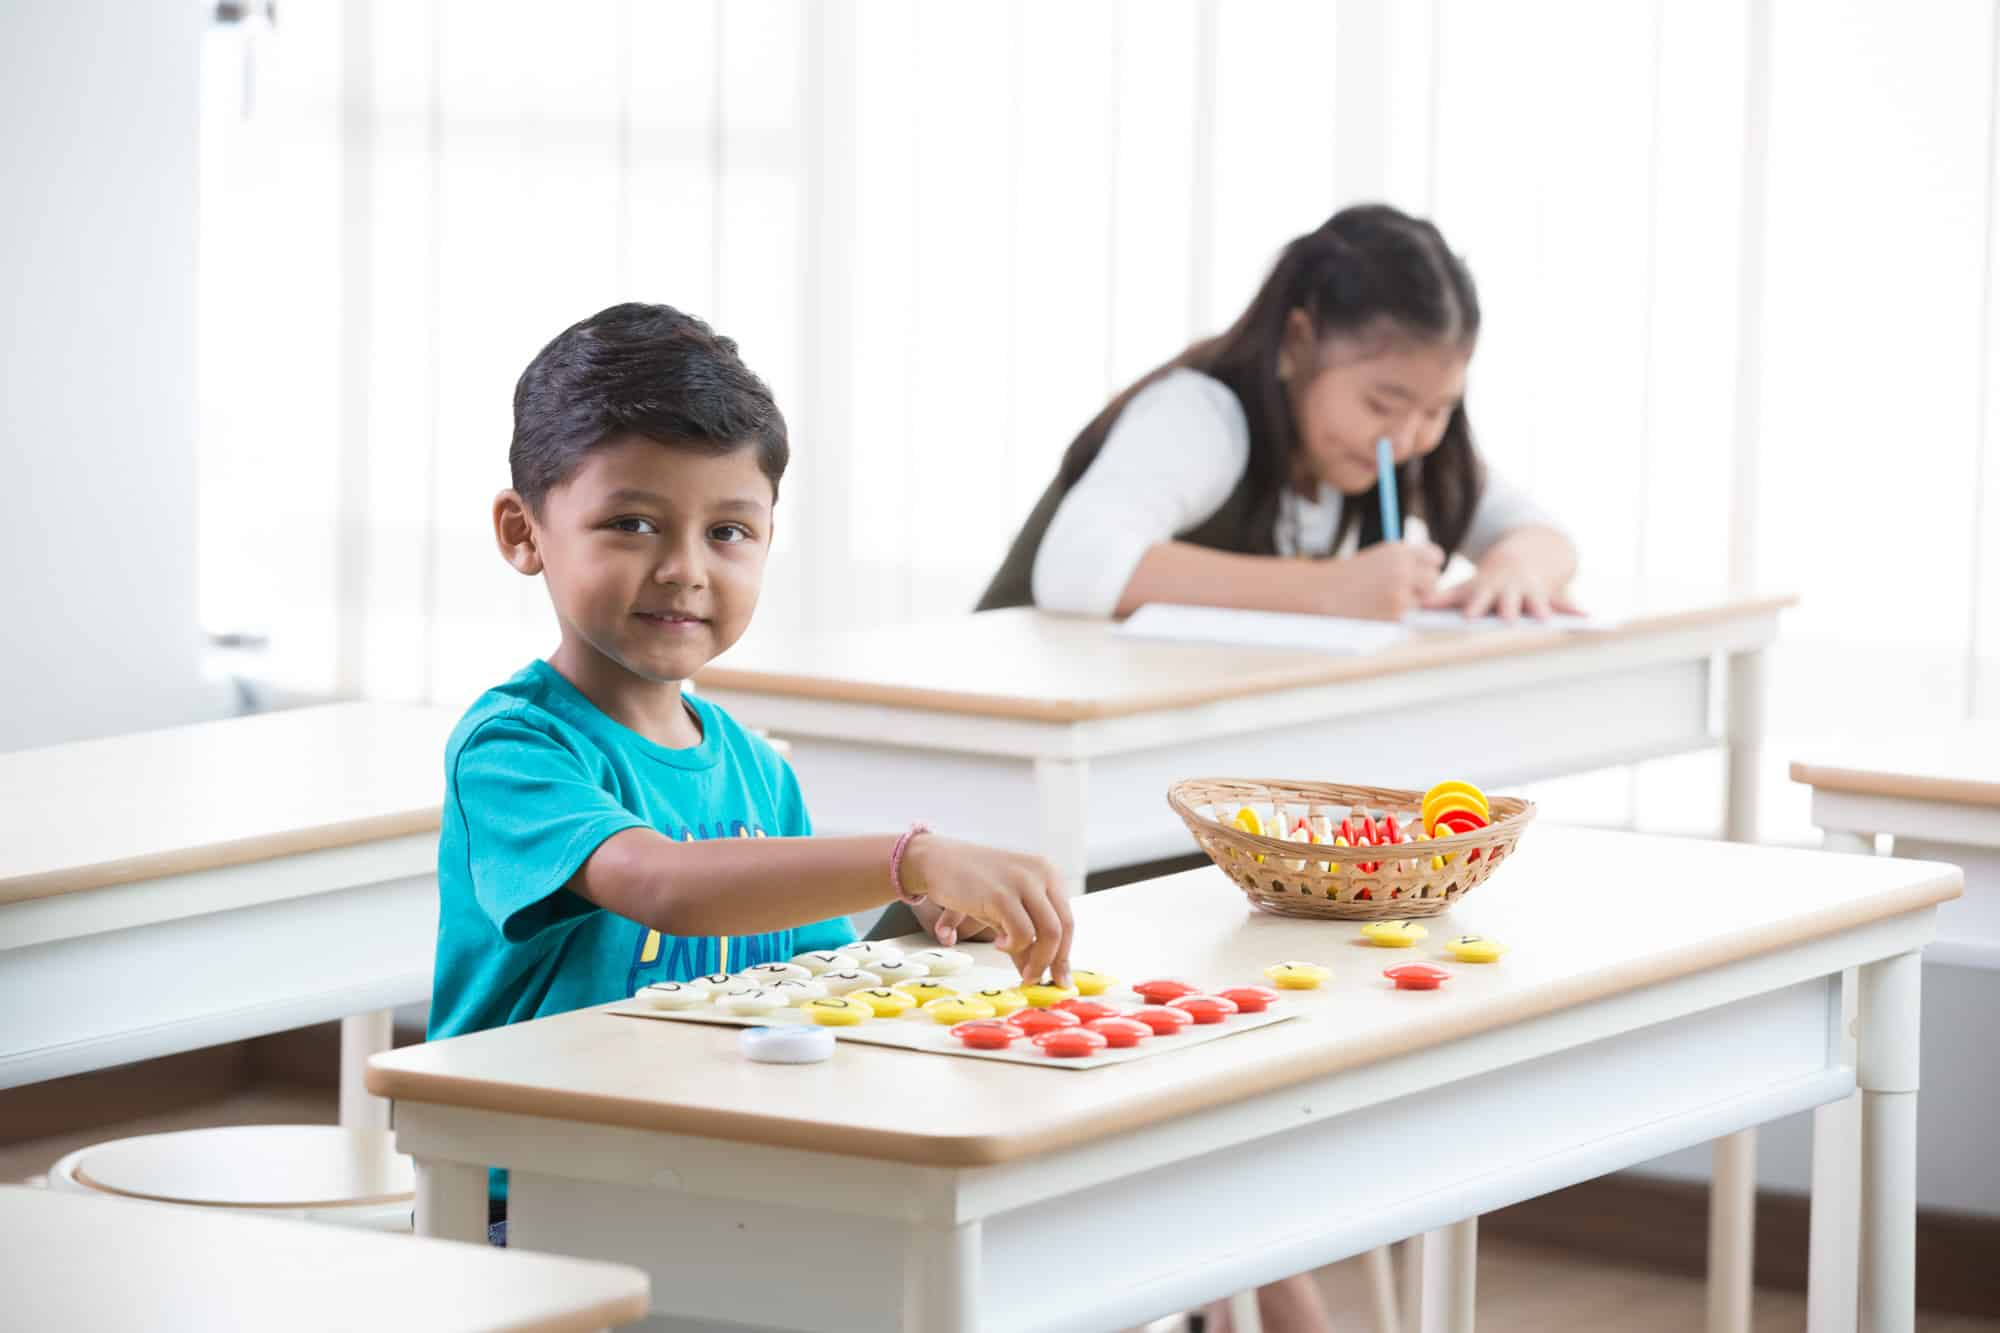 KUMON METHOD OF LEARNING UNLOCKS YOUR CHILD'S HIDDEN ABILITIES